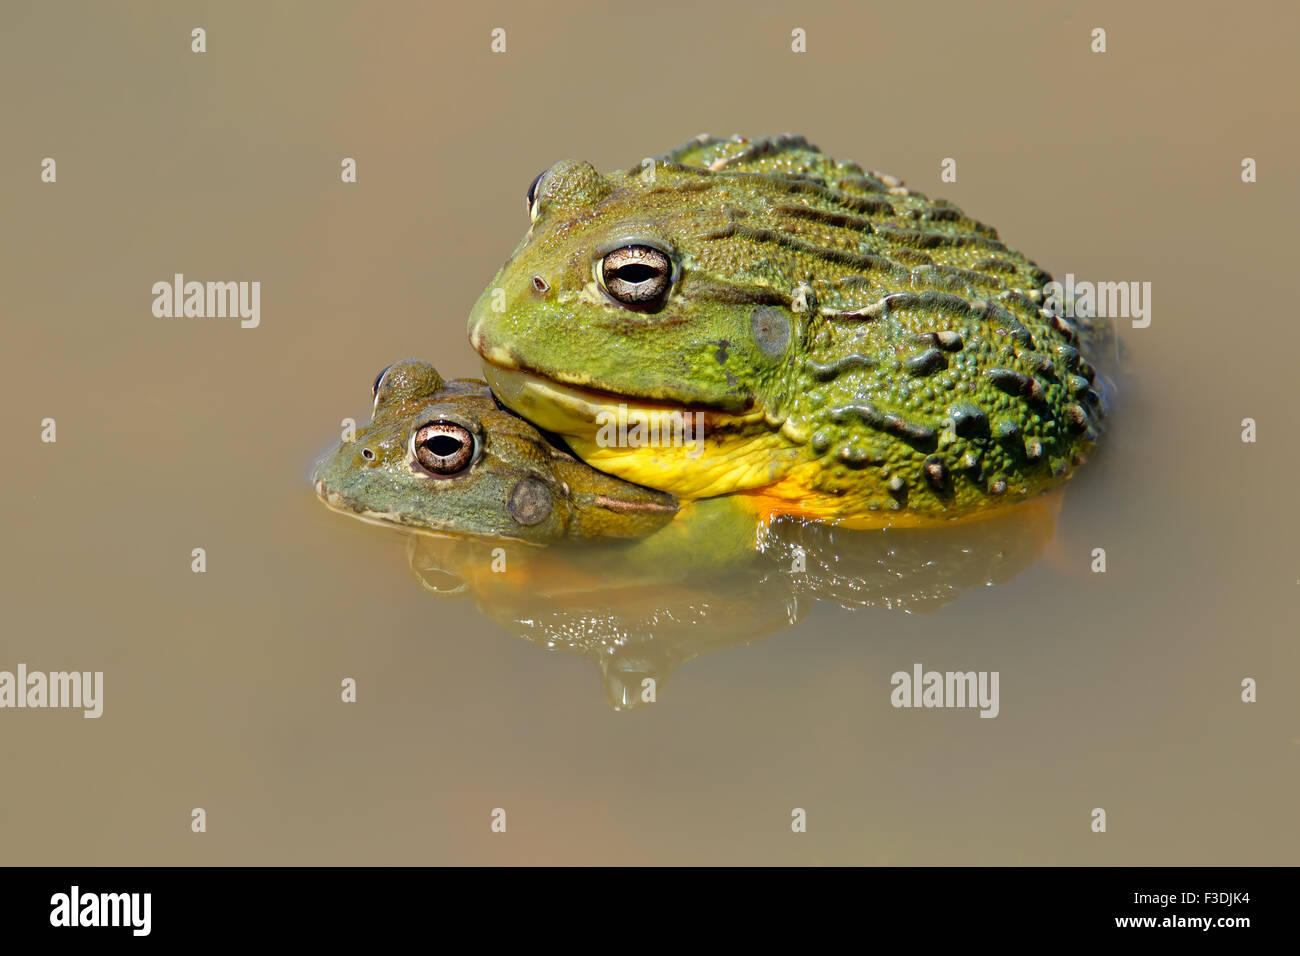 A pair of African giant bullfrogs (Pyxicephalus adspersus) mating, South Africa - Stock Image